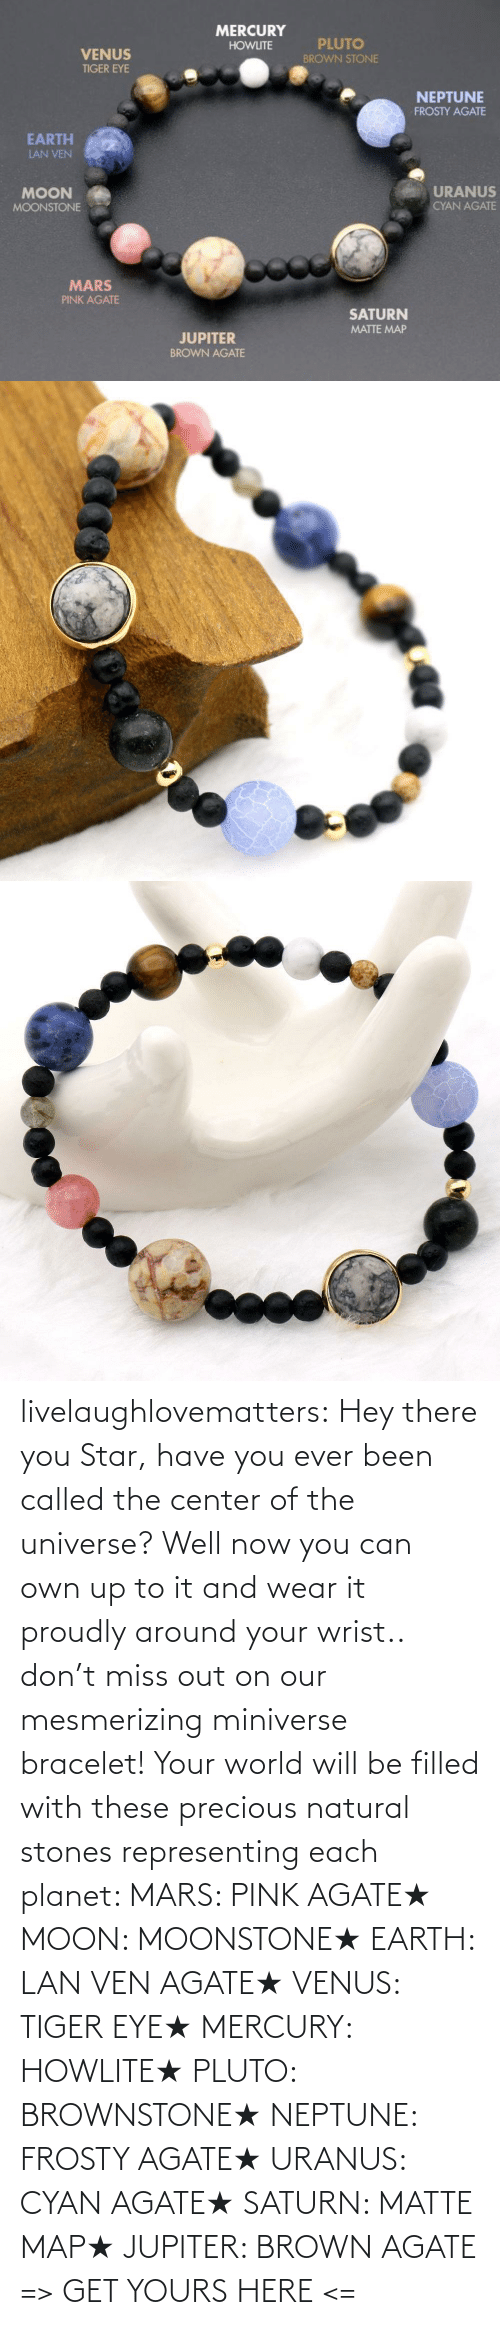 Center: MERCURY  PLUTO  HOWLITE  VENUS  BROWN STONE  TIGER EYE  NEPTUNE  FROSTY AGATE  EARTH  LAN VEN  URANUS  MOON  CYAN AGATE  MOONSTONE  MARS  PINK AGATE  SATURN  MATTE MAP  JUPITER  BROWN AGATE livelaughlovematters: Hey there you Star, have you ever been called the center of the universe? Well now you can own up to it and wear it proudly around your wrist.. don't miss out on our mesmerizing miniverse bracelet! Your world will be filled with these precious natural stones representing each planet:  MARS: PINK AGATE★ MOON: MOONSTONE★ EARTH: LAN VEN AGATE★ VENUS: TIGER EYE★ MERCURY: HOWLITE★ PLUTO: BROWNSTONE★ NEPTUNE: FROSTY AGATE★ URANUS: CYAN AGATE★ SATURN: MATTE MAP★ JUPITER: BROWN AGATE => GET YOURS HERE <=